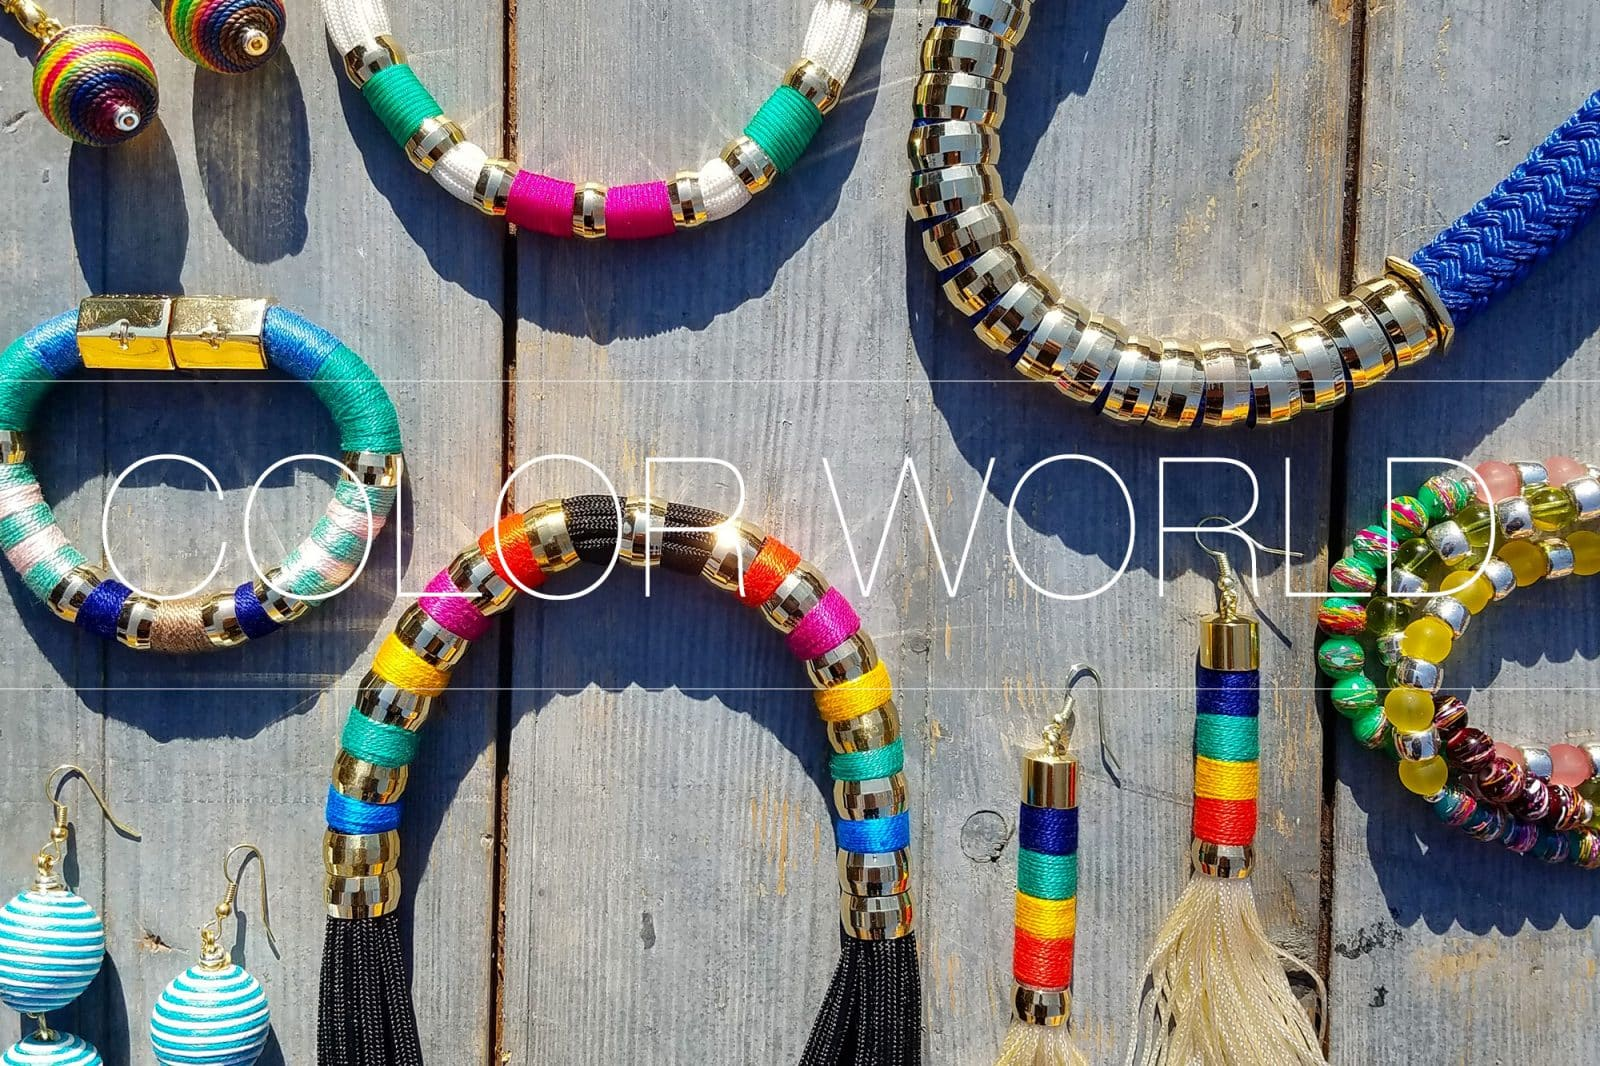 'COLORWORLD' HAS ARRIVED!